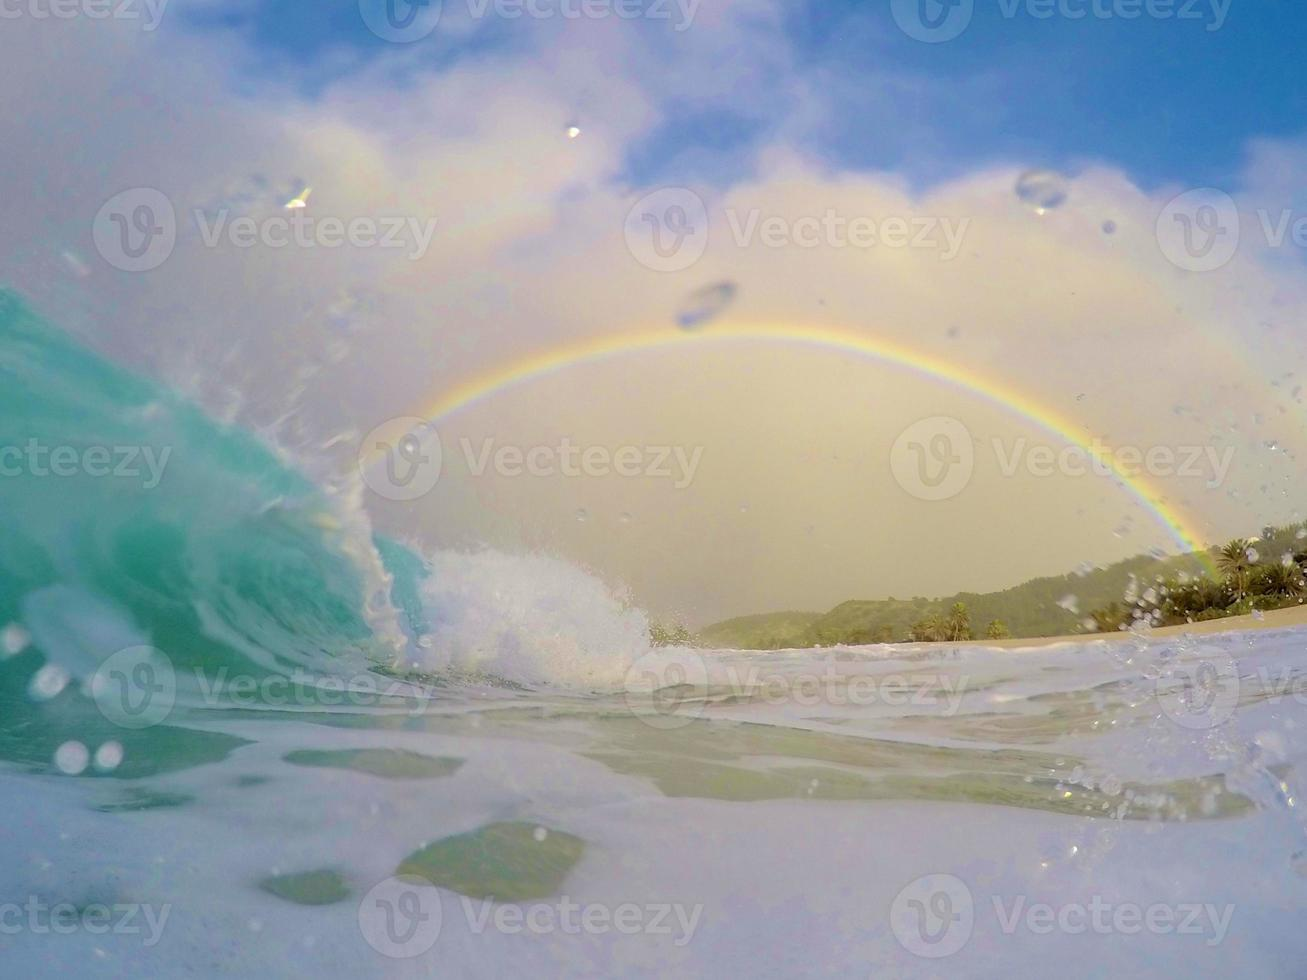 Barrel and a rainbow with water droplets photo